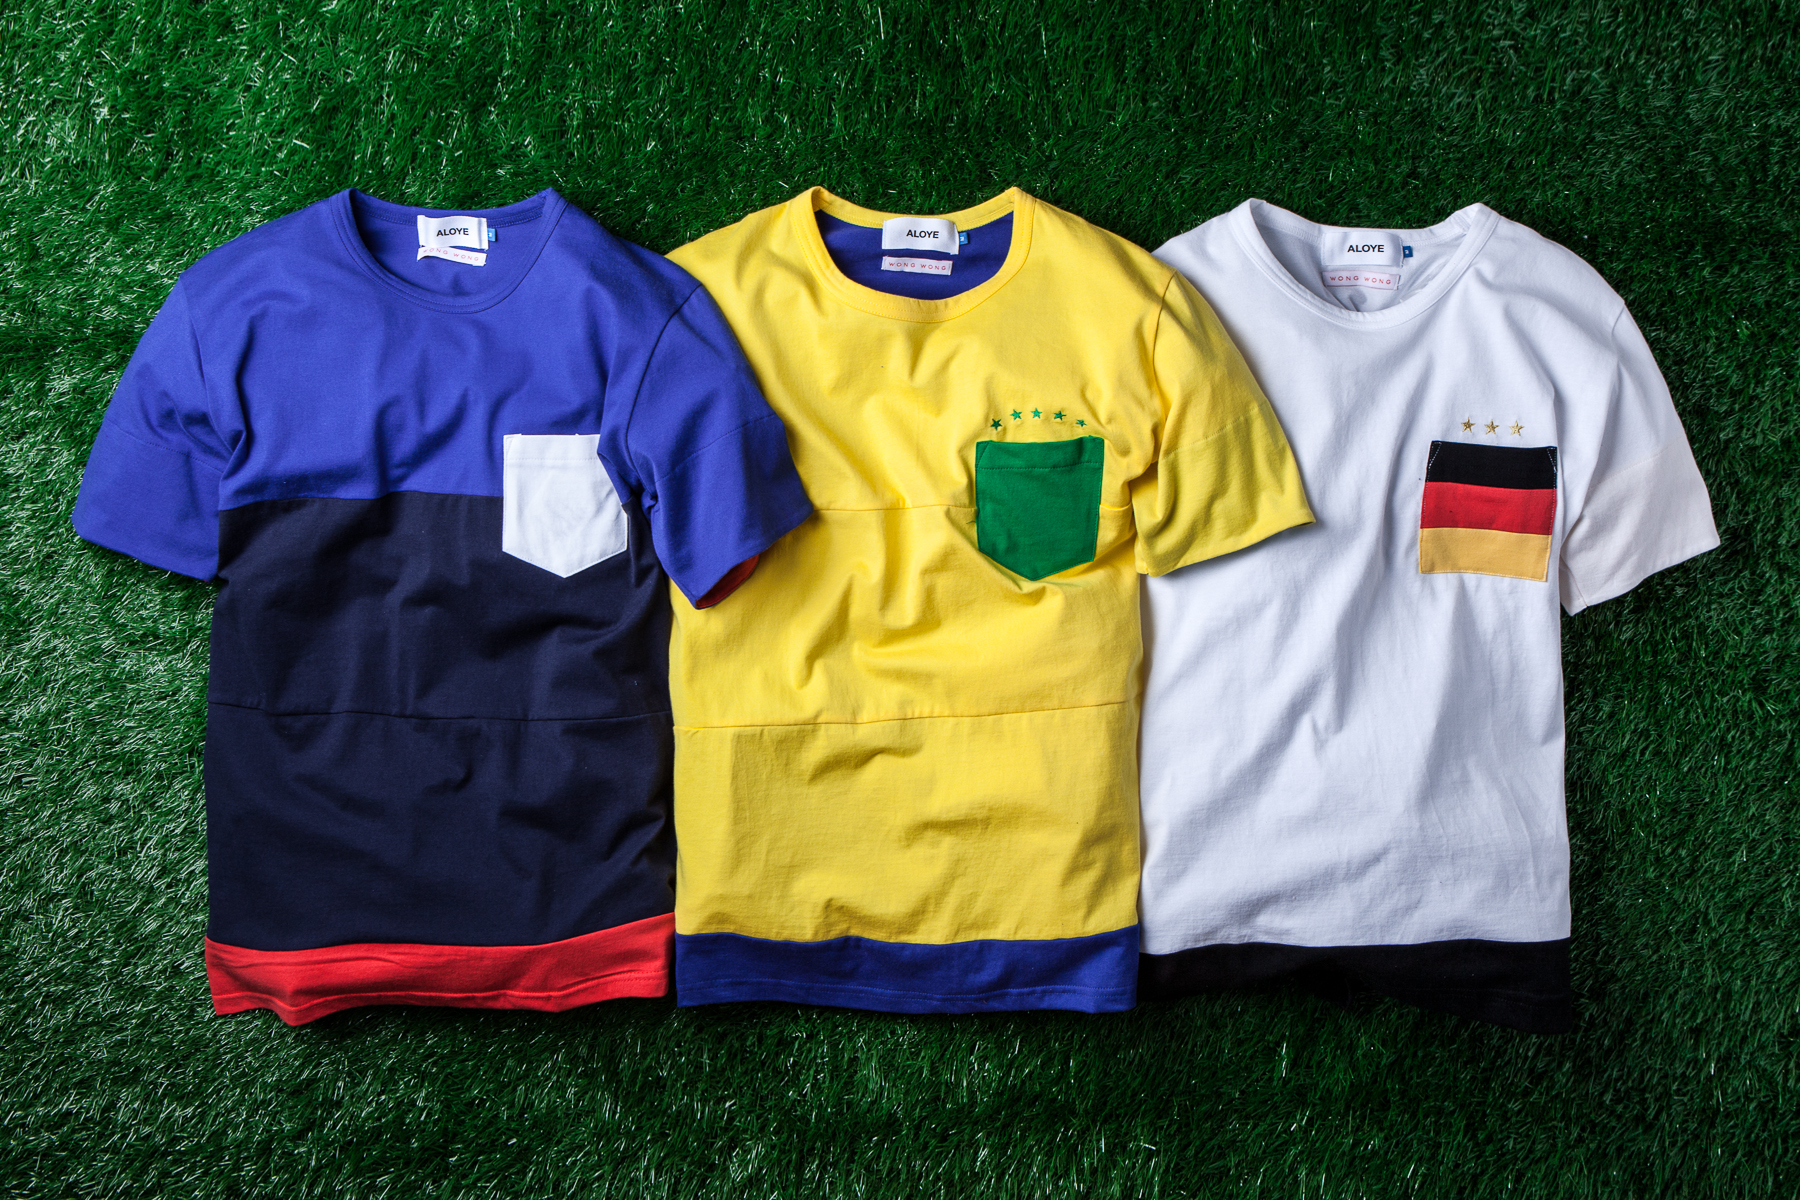 ALOYE x WONG WONG 2014 Brasil Collection